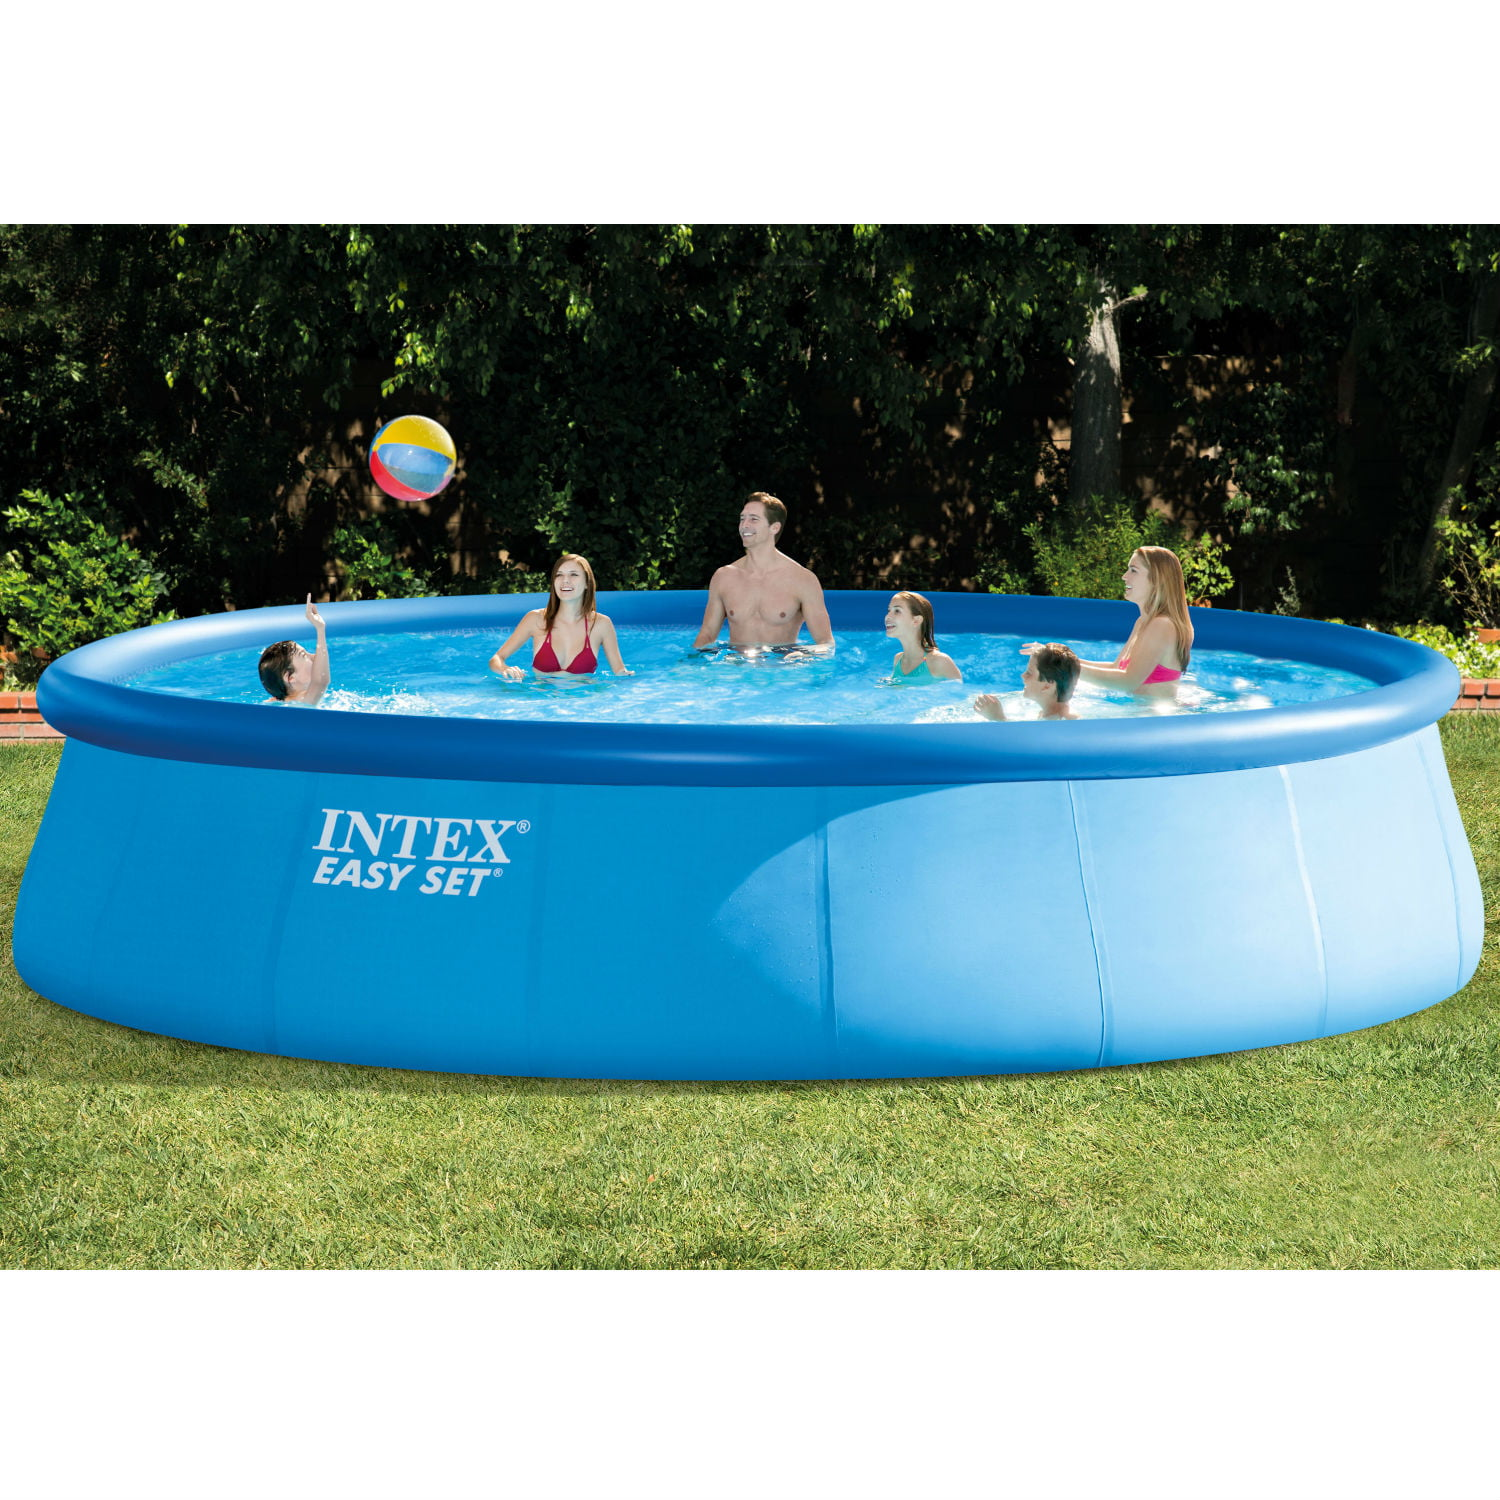 Intex 18 39 x 48 easy set above ground swimming pool with for On ground pools